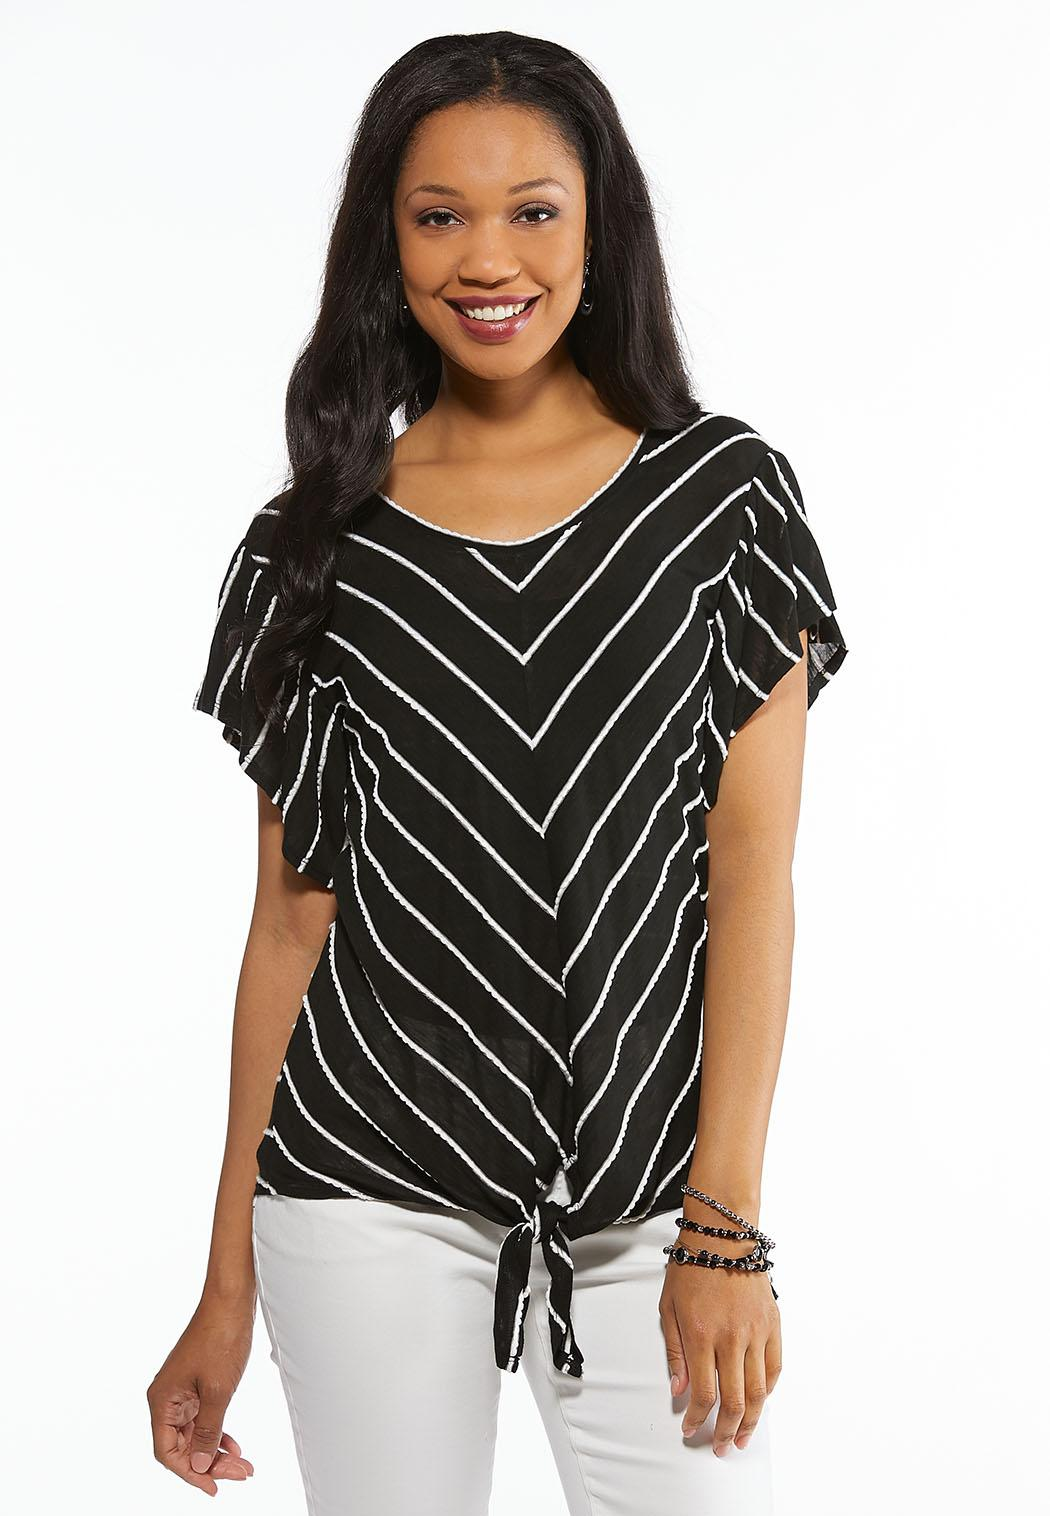 9c042c19f0542 Plus Size Knotted Chevron Top Tees   Knit Tops Cato Fashions